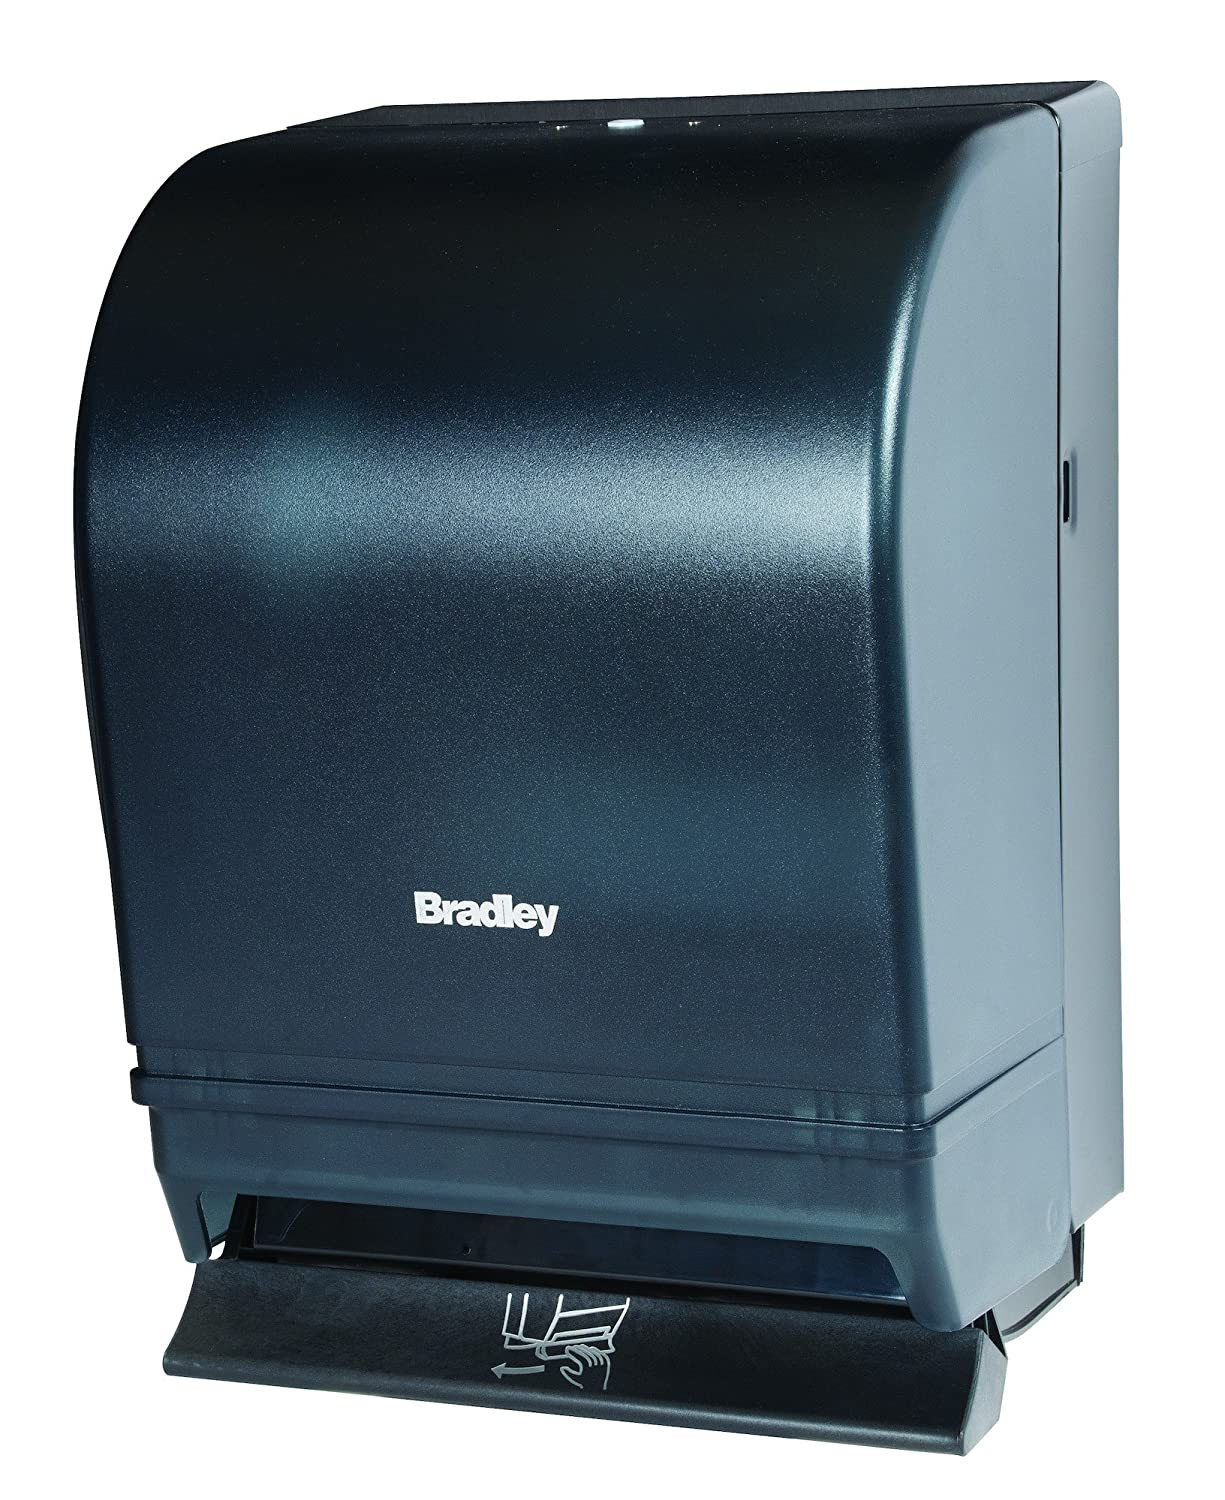 Bradley 2497-000000 Roll Towel Dispenser, Lever Operated, Surface Mounted